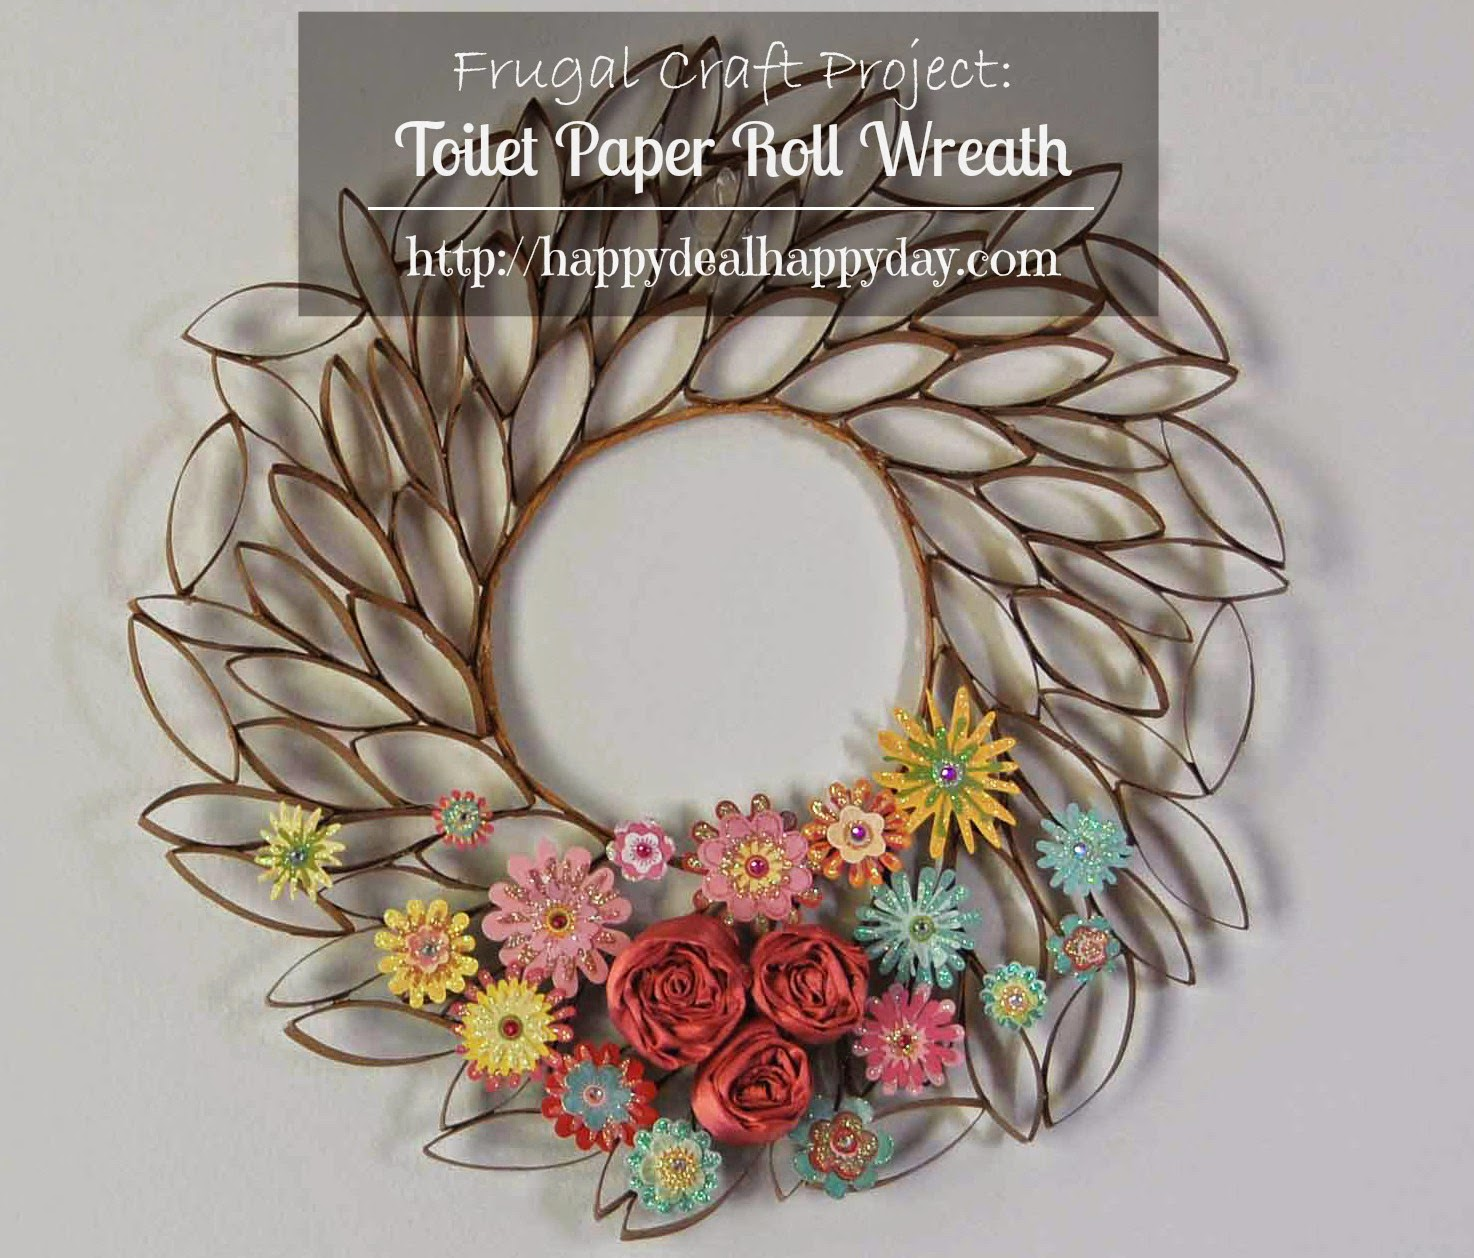 http://happydealhappyday.com/toilet-paper-roll-craft-toilet-paper-roll-wreath/